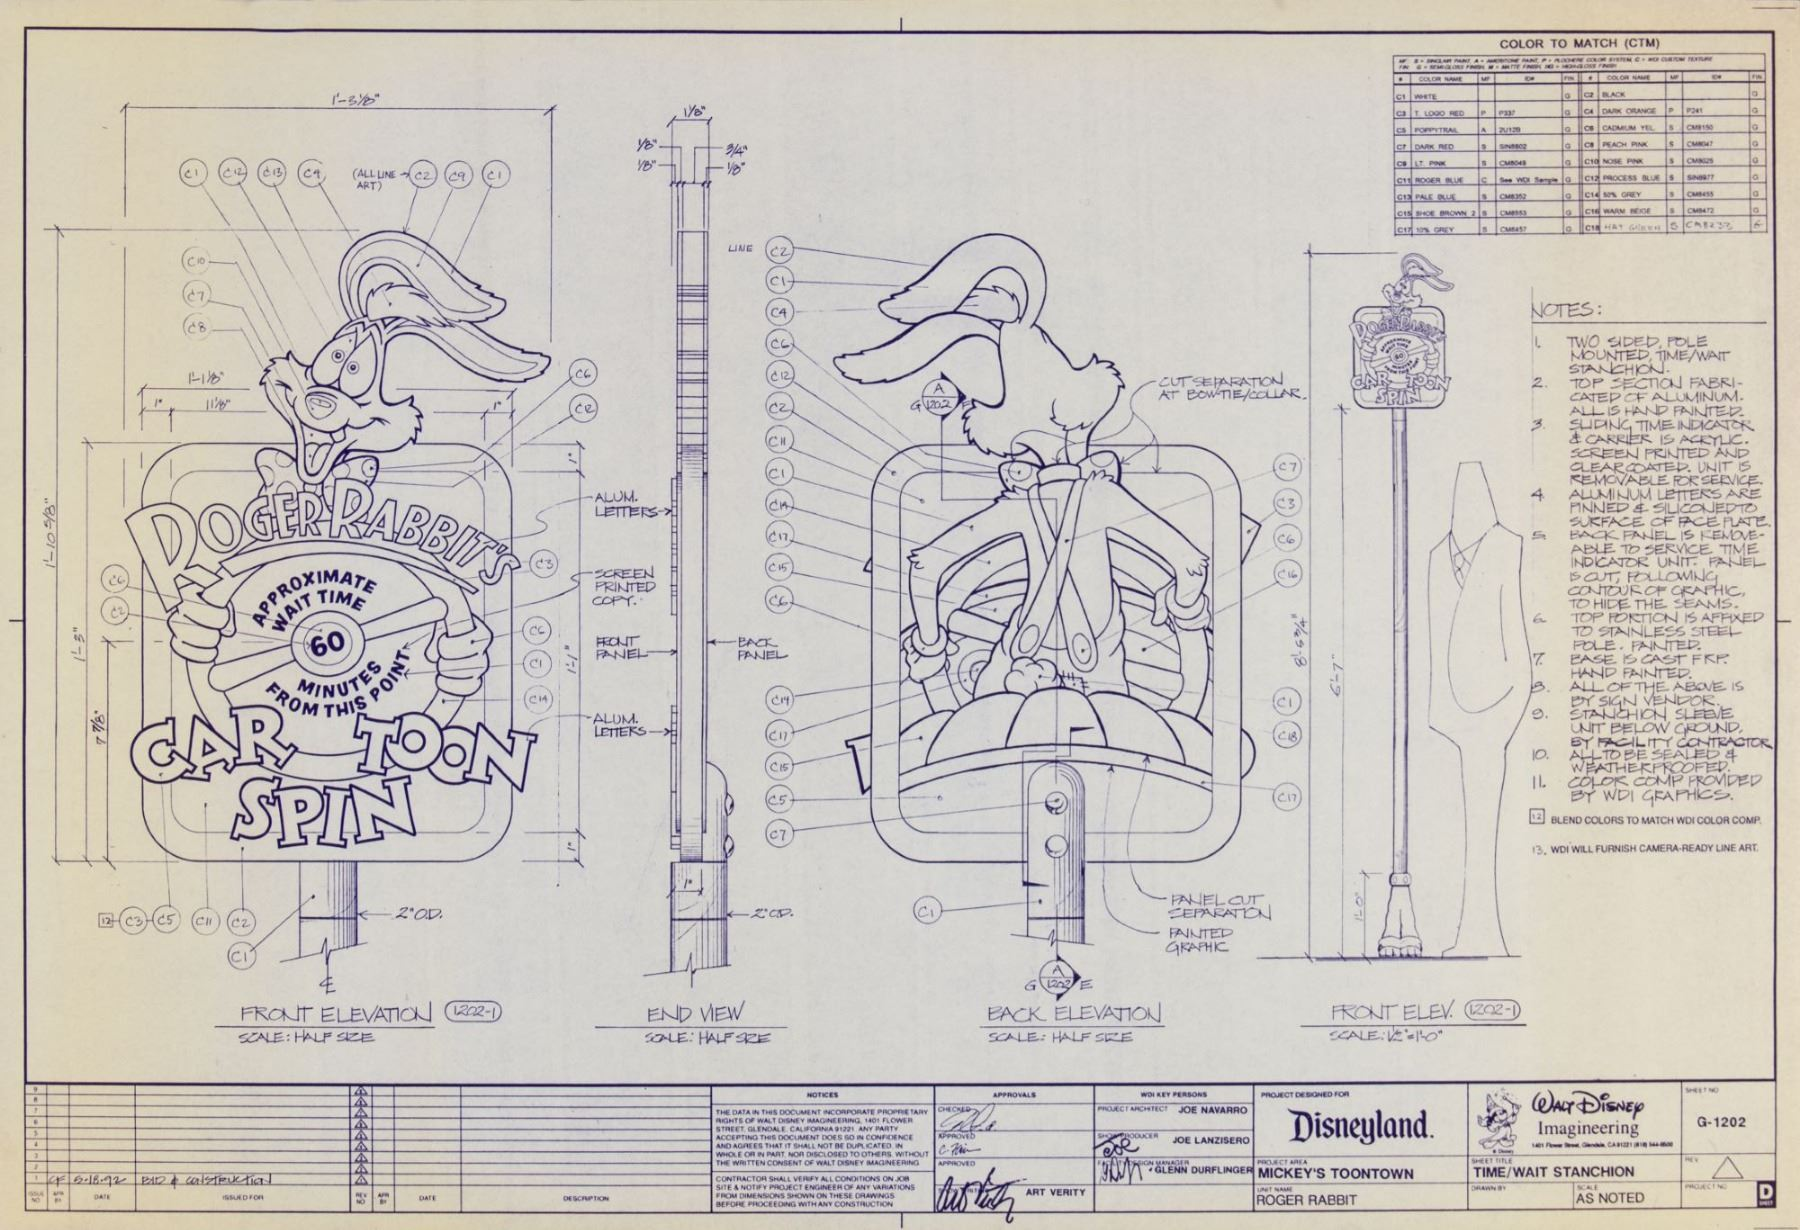 medium resolution of  image 4 collection of 4 roger rabbit s car toon spin blueprints